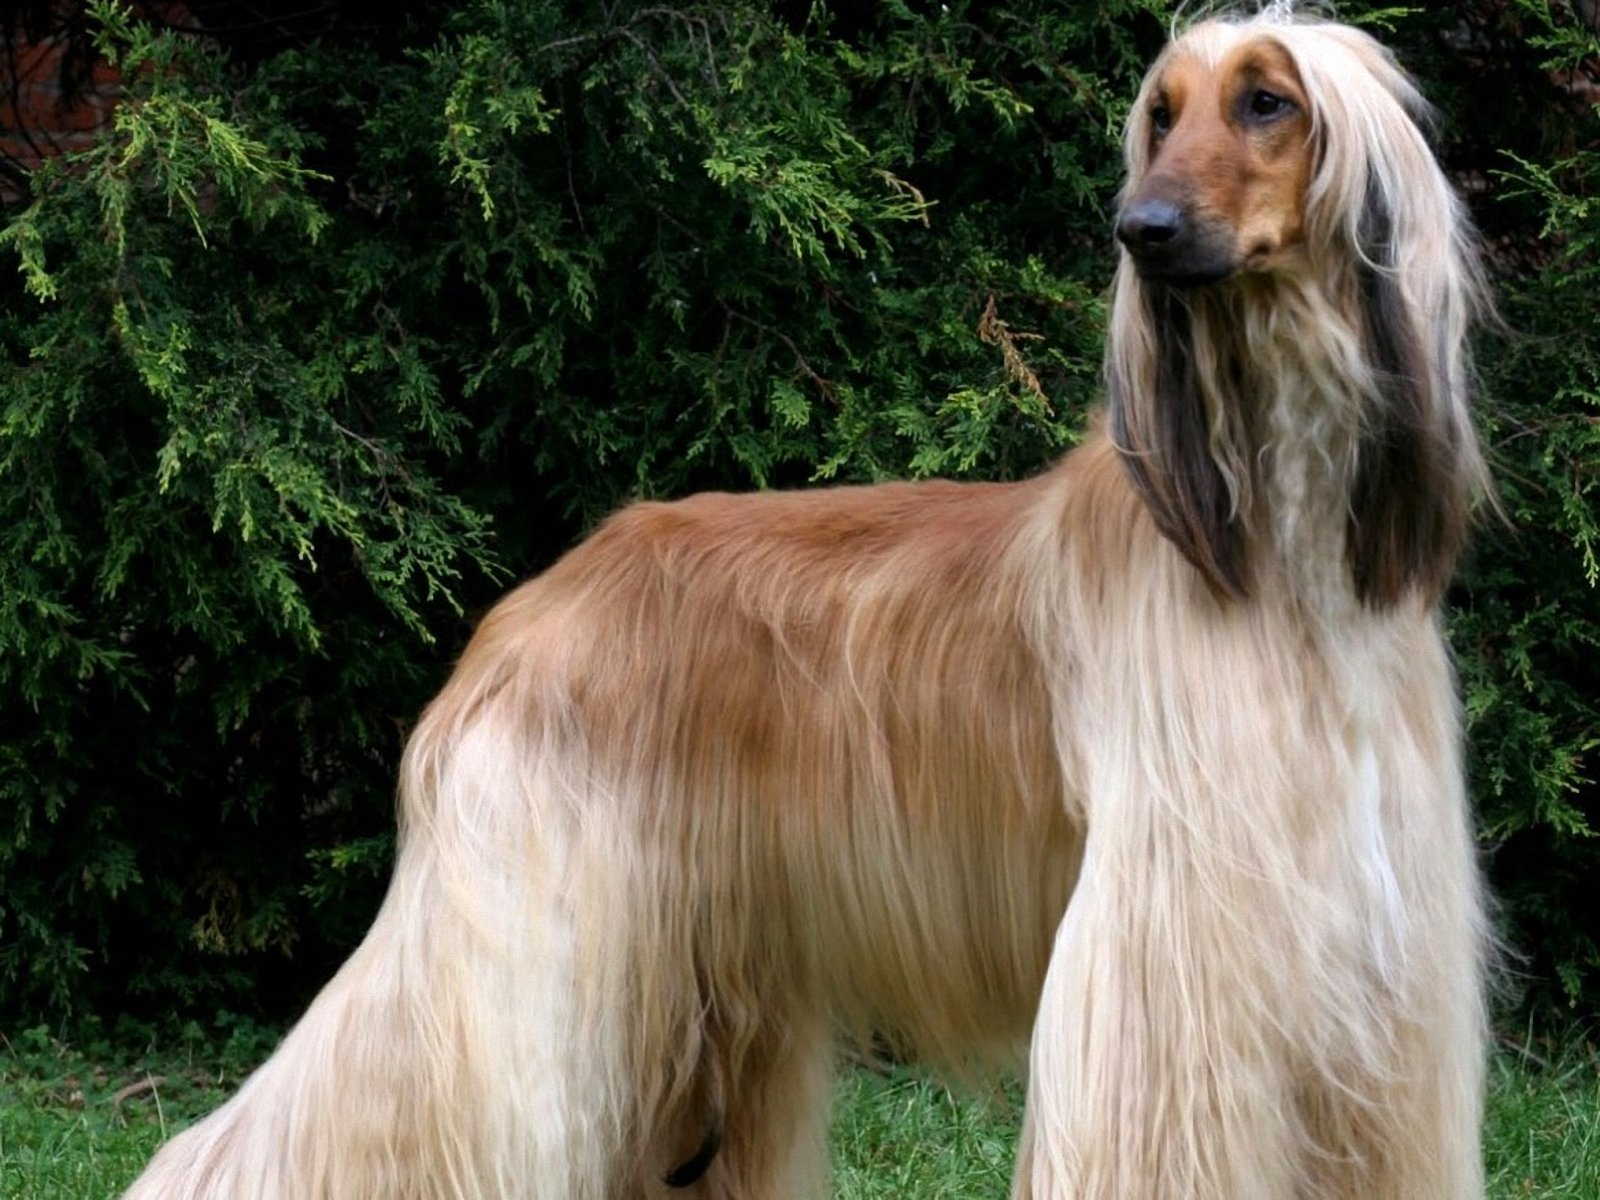 afgan hound top 10 dumbest dog breeds